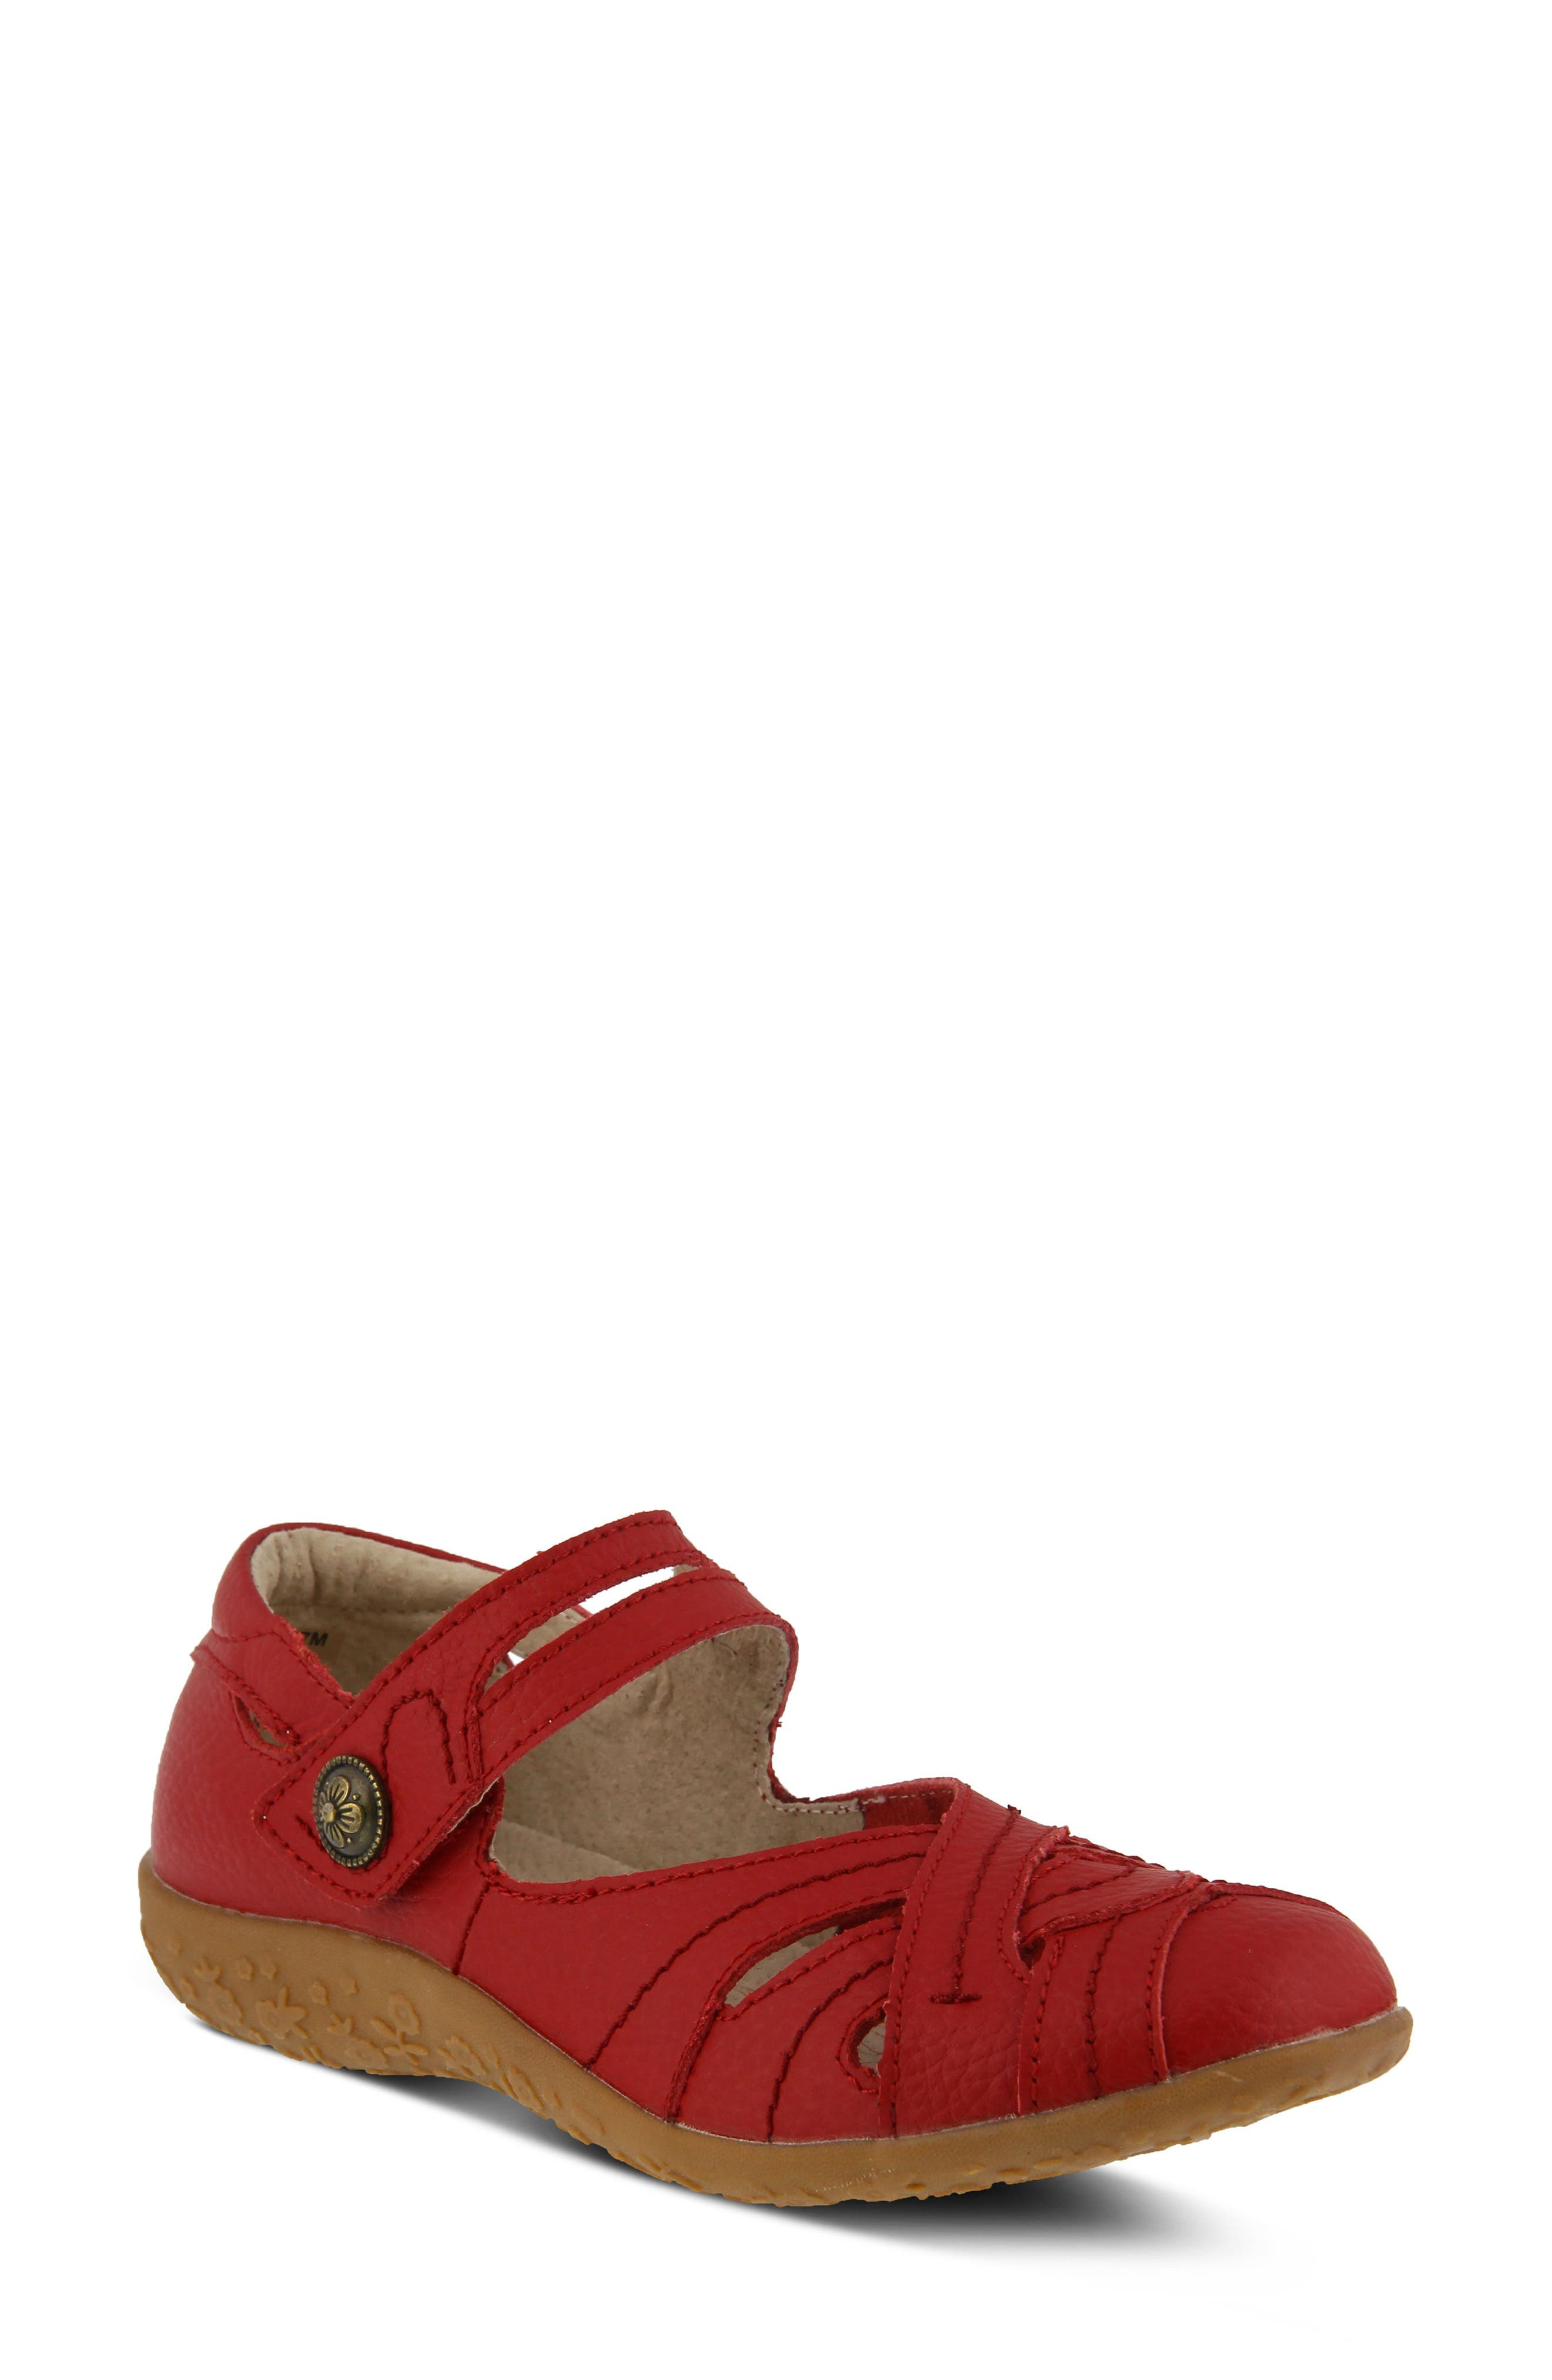 Spring Step Hearts Flat, Red